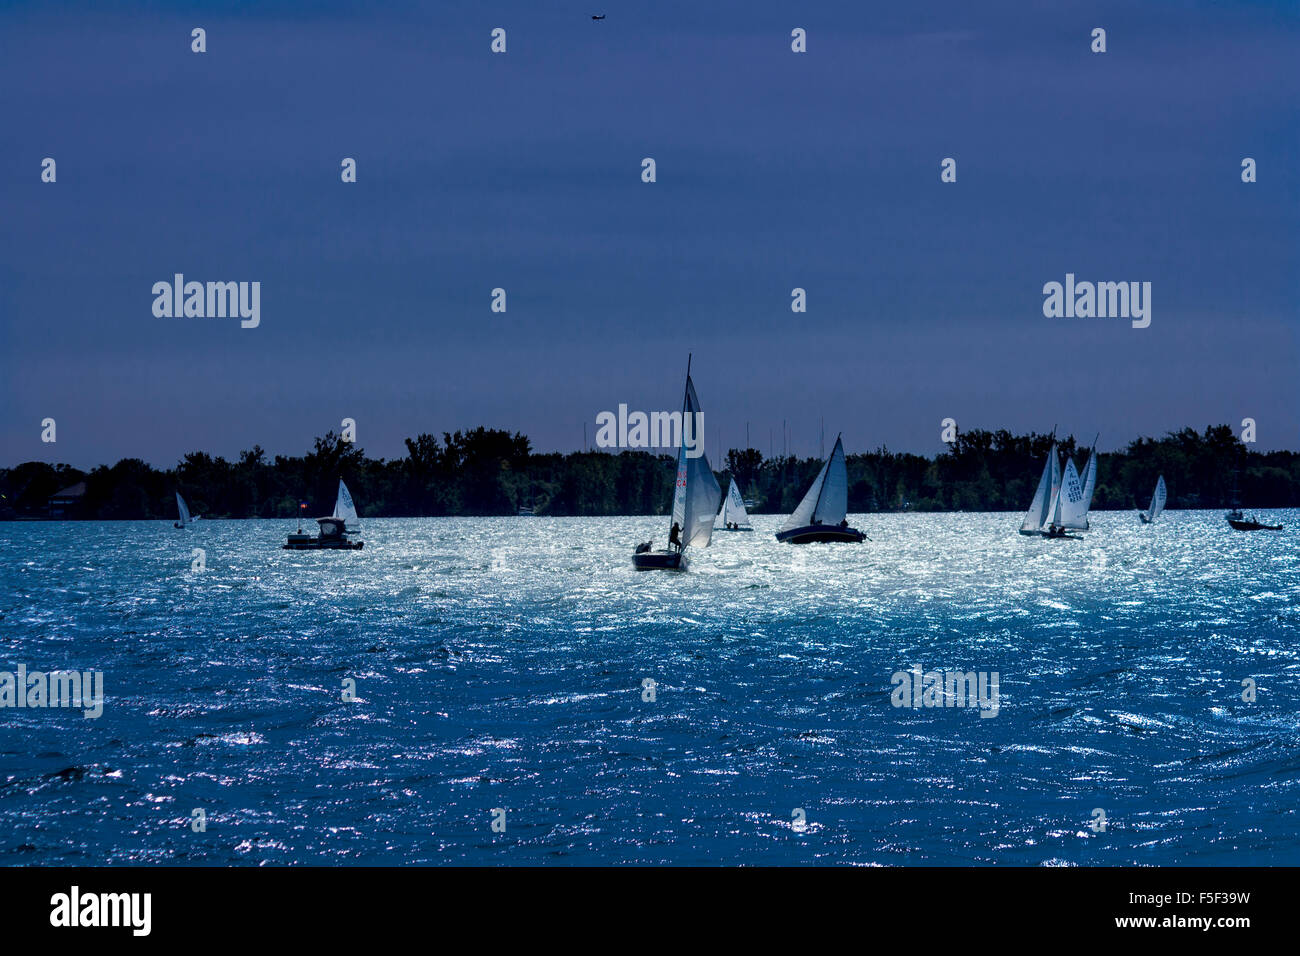 sailboats-in-moonlight-on-lake-ontario-F